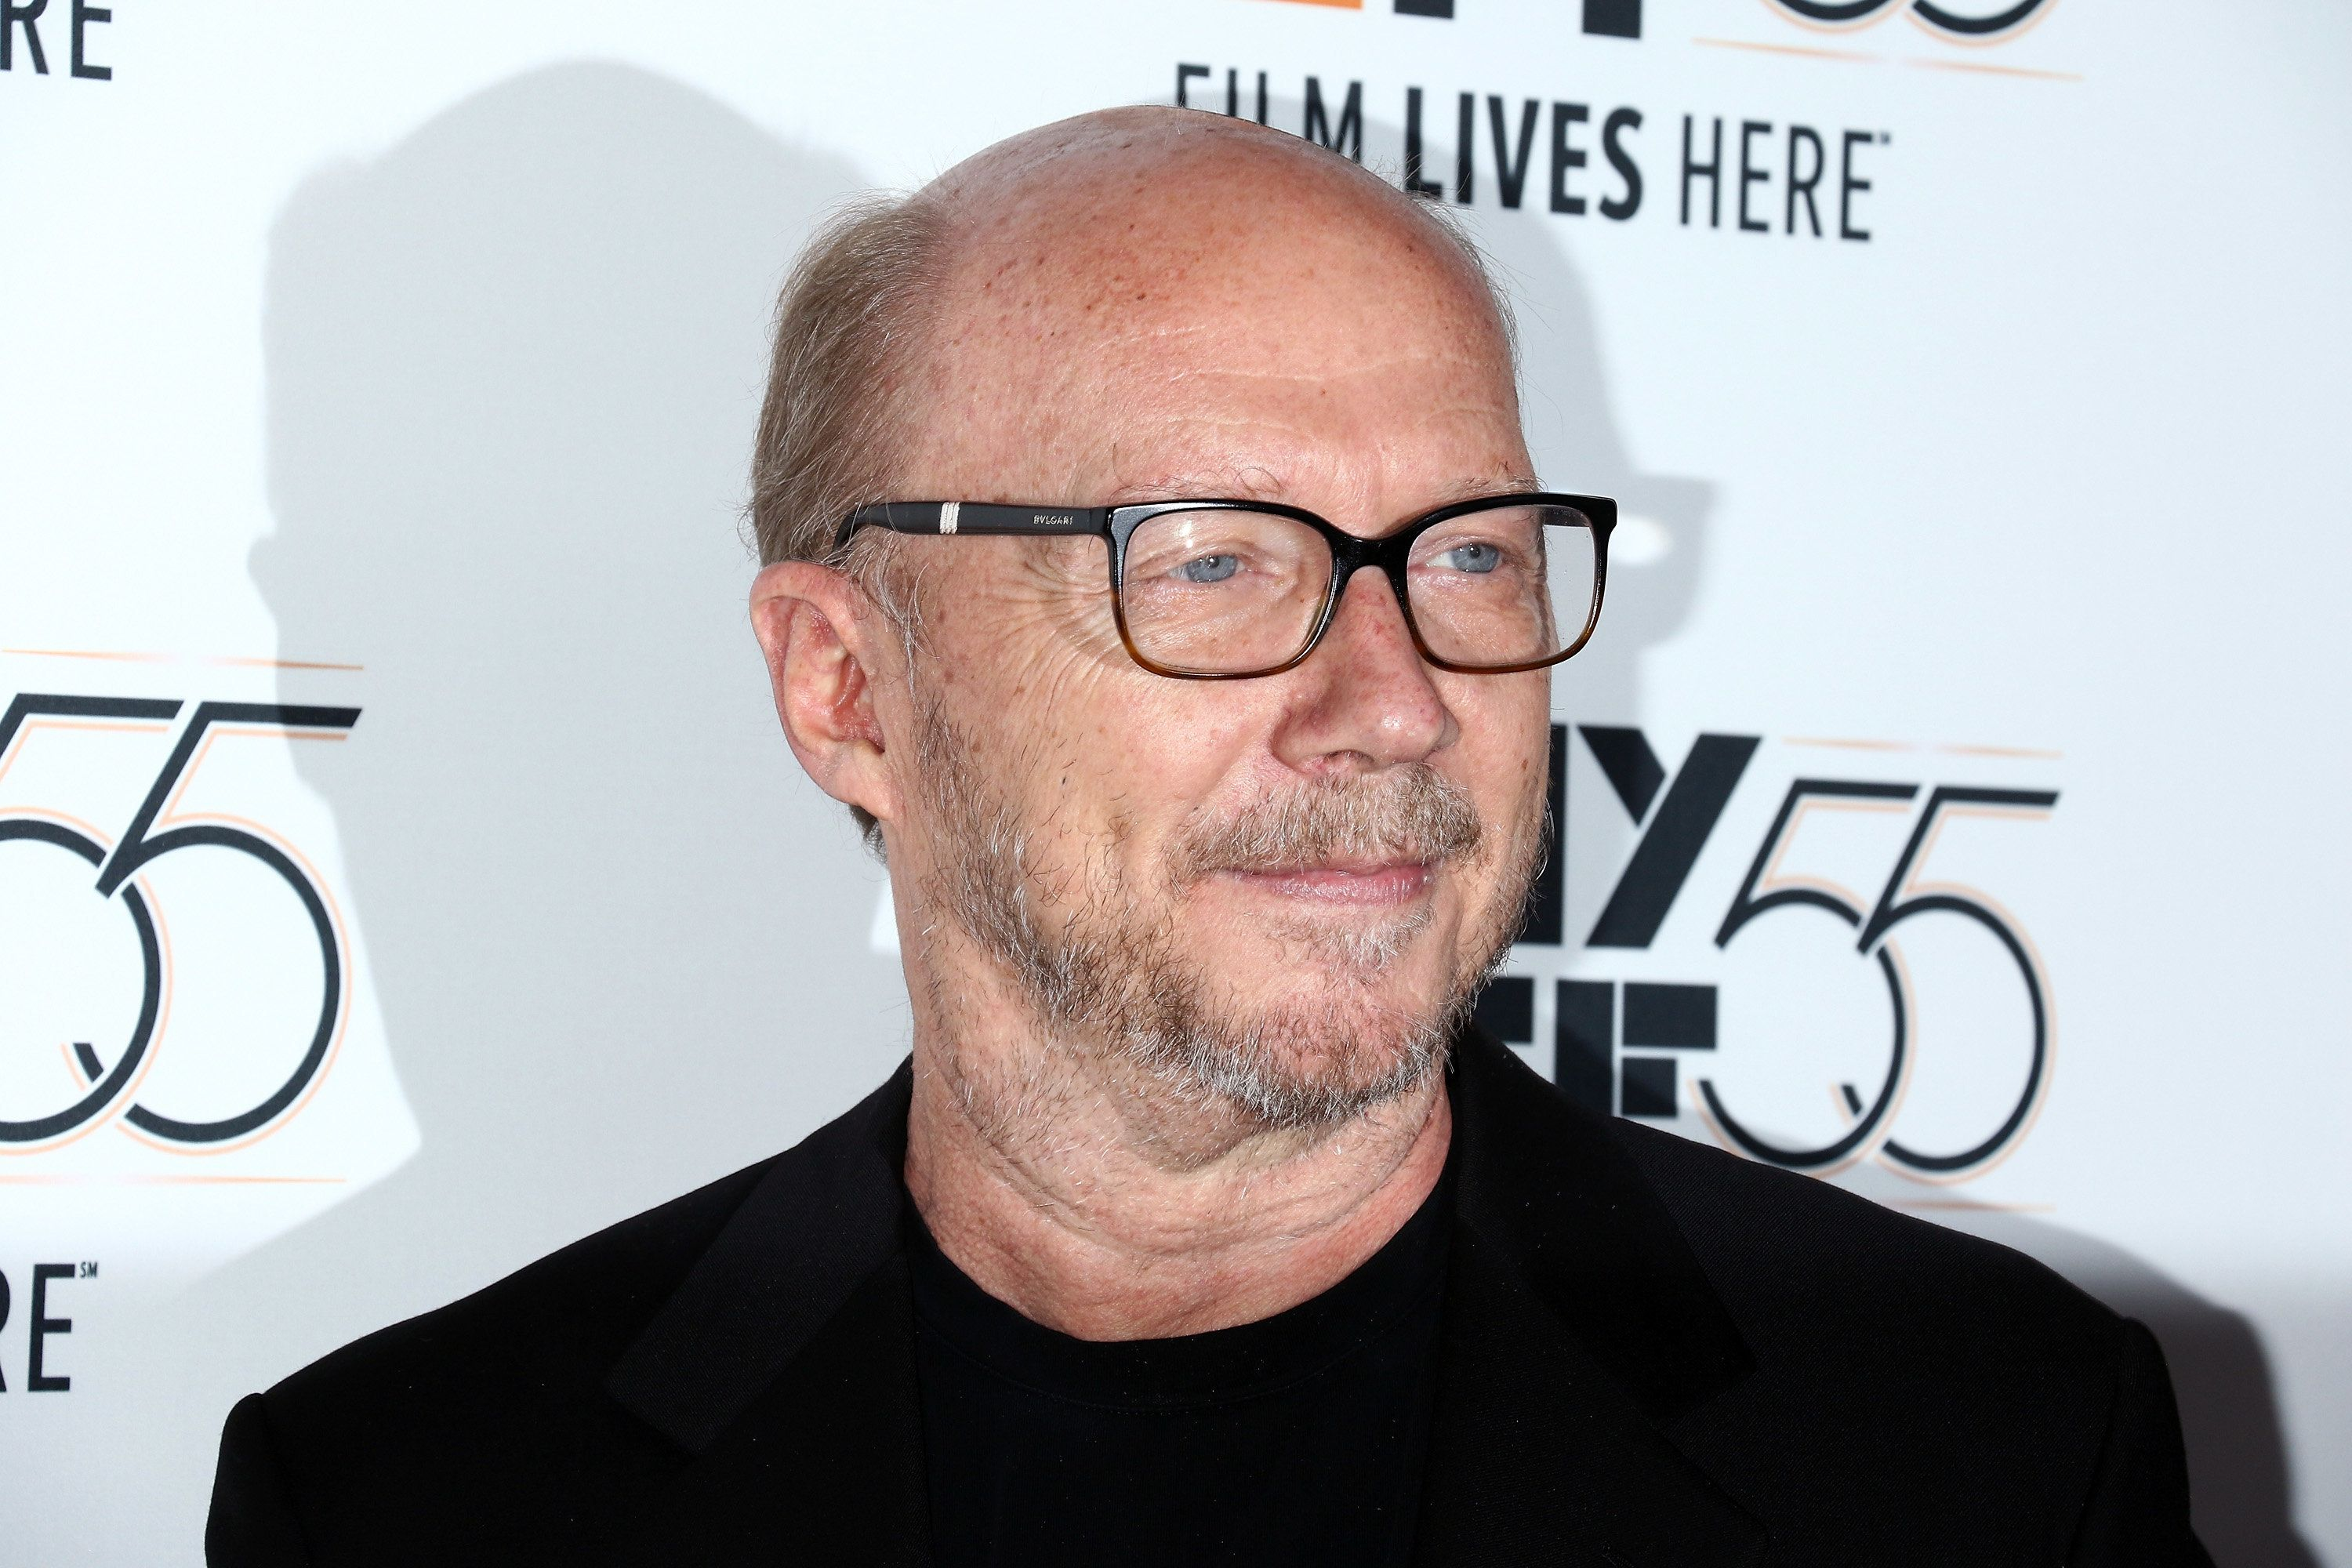 NEW YORK, NY - OCTOBER 05:  Writer/director Paul Haggis attends the 55th New York Film Festival  'Spielberg' premiere at Alice Tully Hall on October 5, 2017 in New York City.  (Photo by Jim Spellman/WireImage)